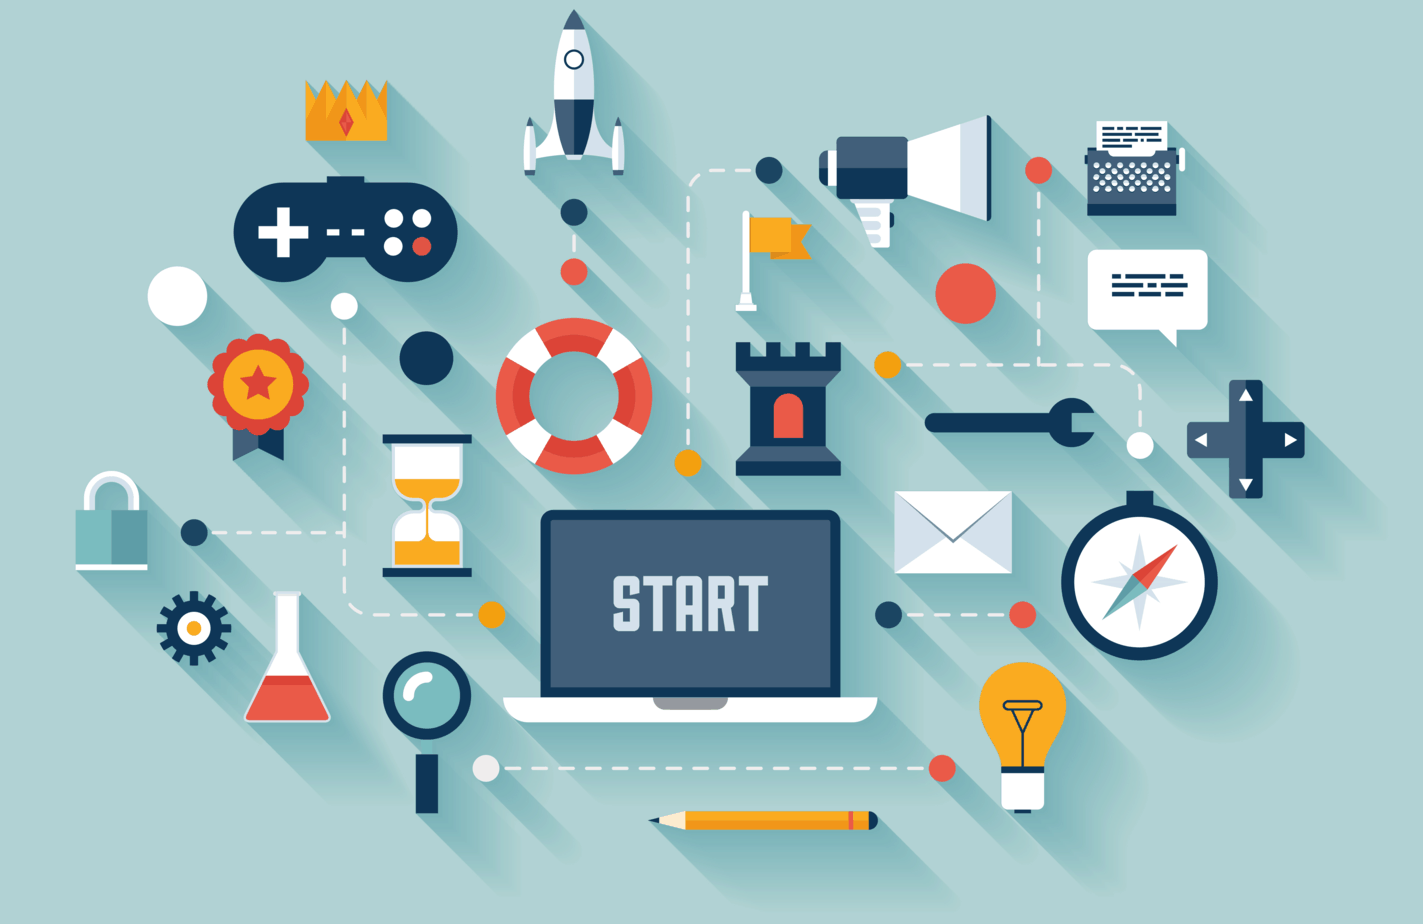 5 elements of a gamified approach to use in education